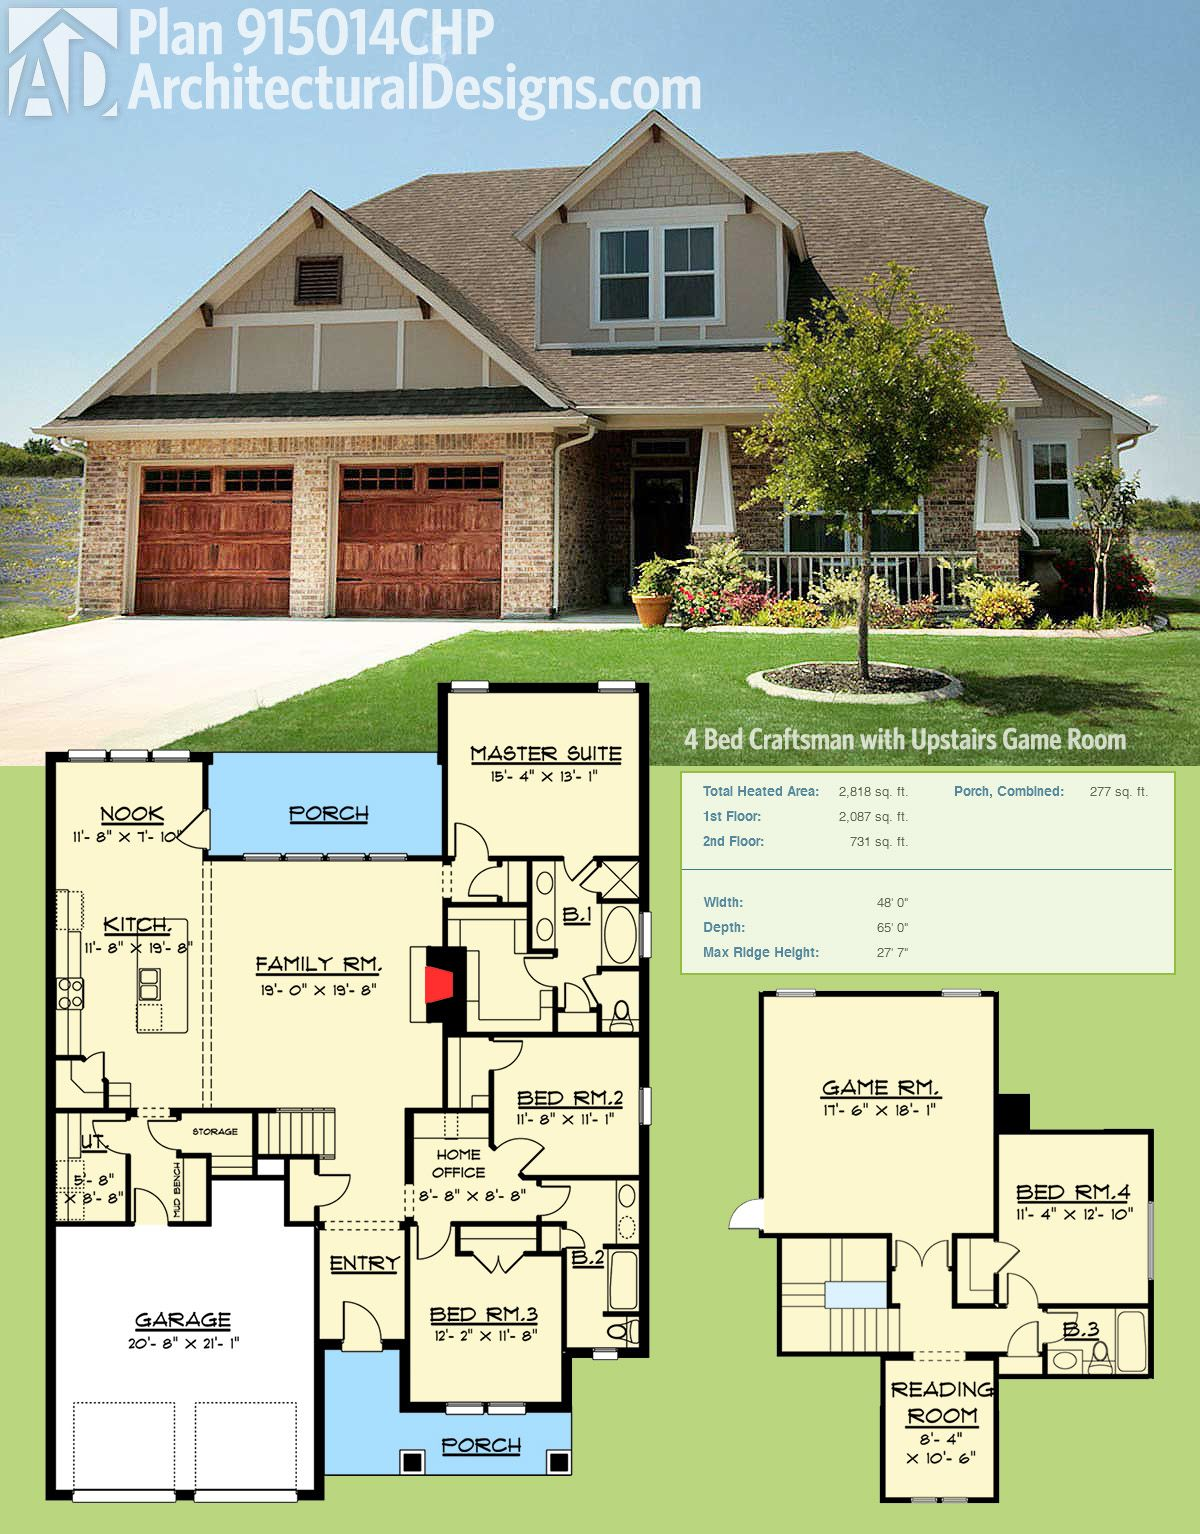 craftsman house plans 3000 sq ft. Architectural Designs Craftsman House Plan 915014CHP gives you 4 beds and  over 2 800 square feet of Bed with Upstairs Game Room